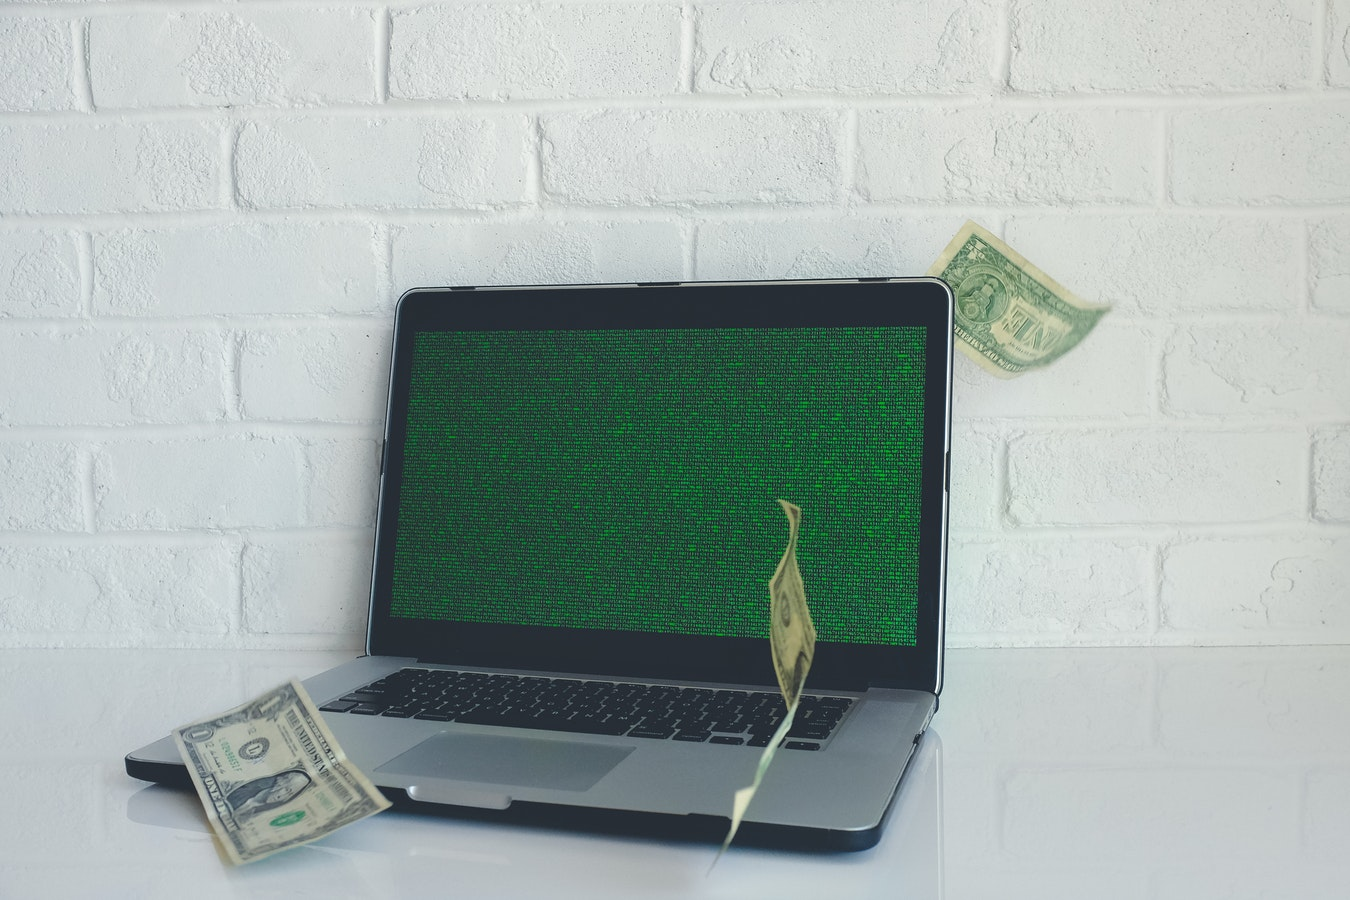 A computer with dollar bills in front of it. Many individuals whose identity is stolen is taken for money